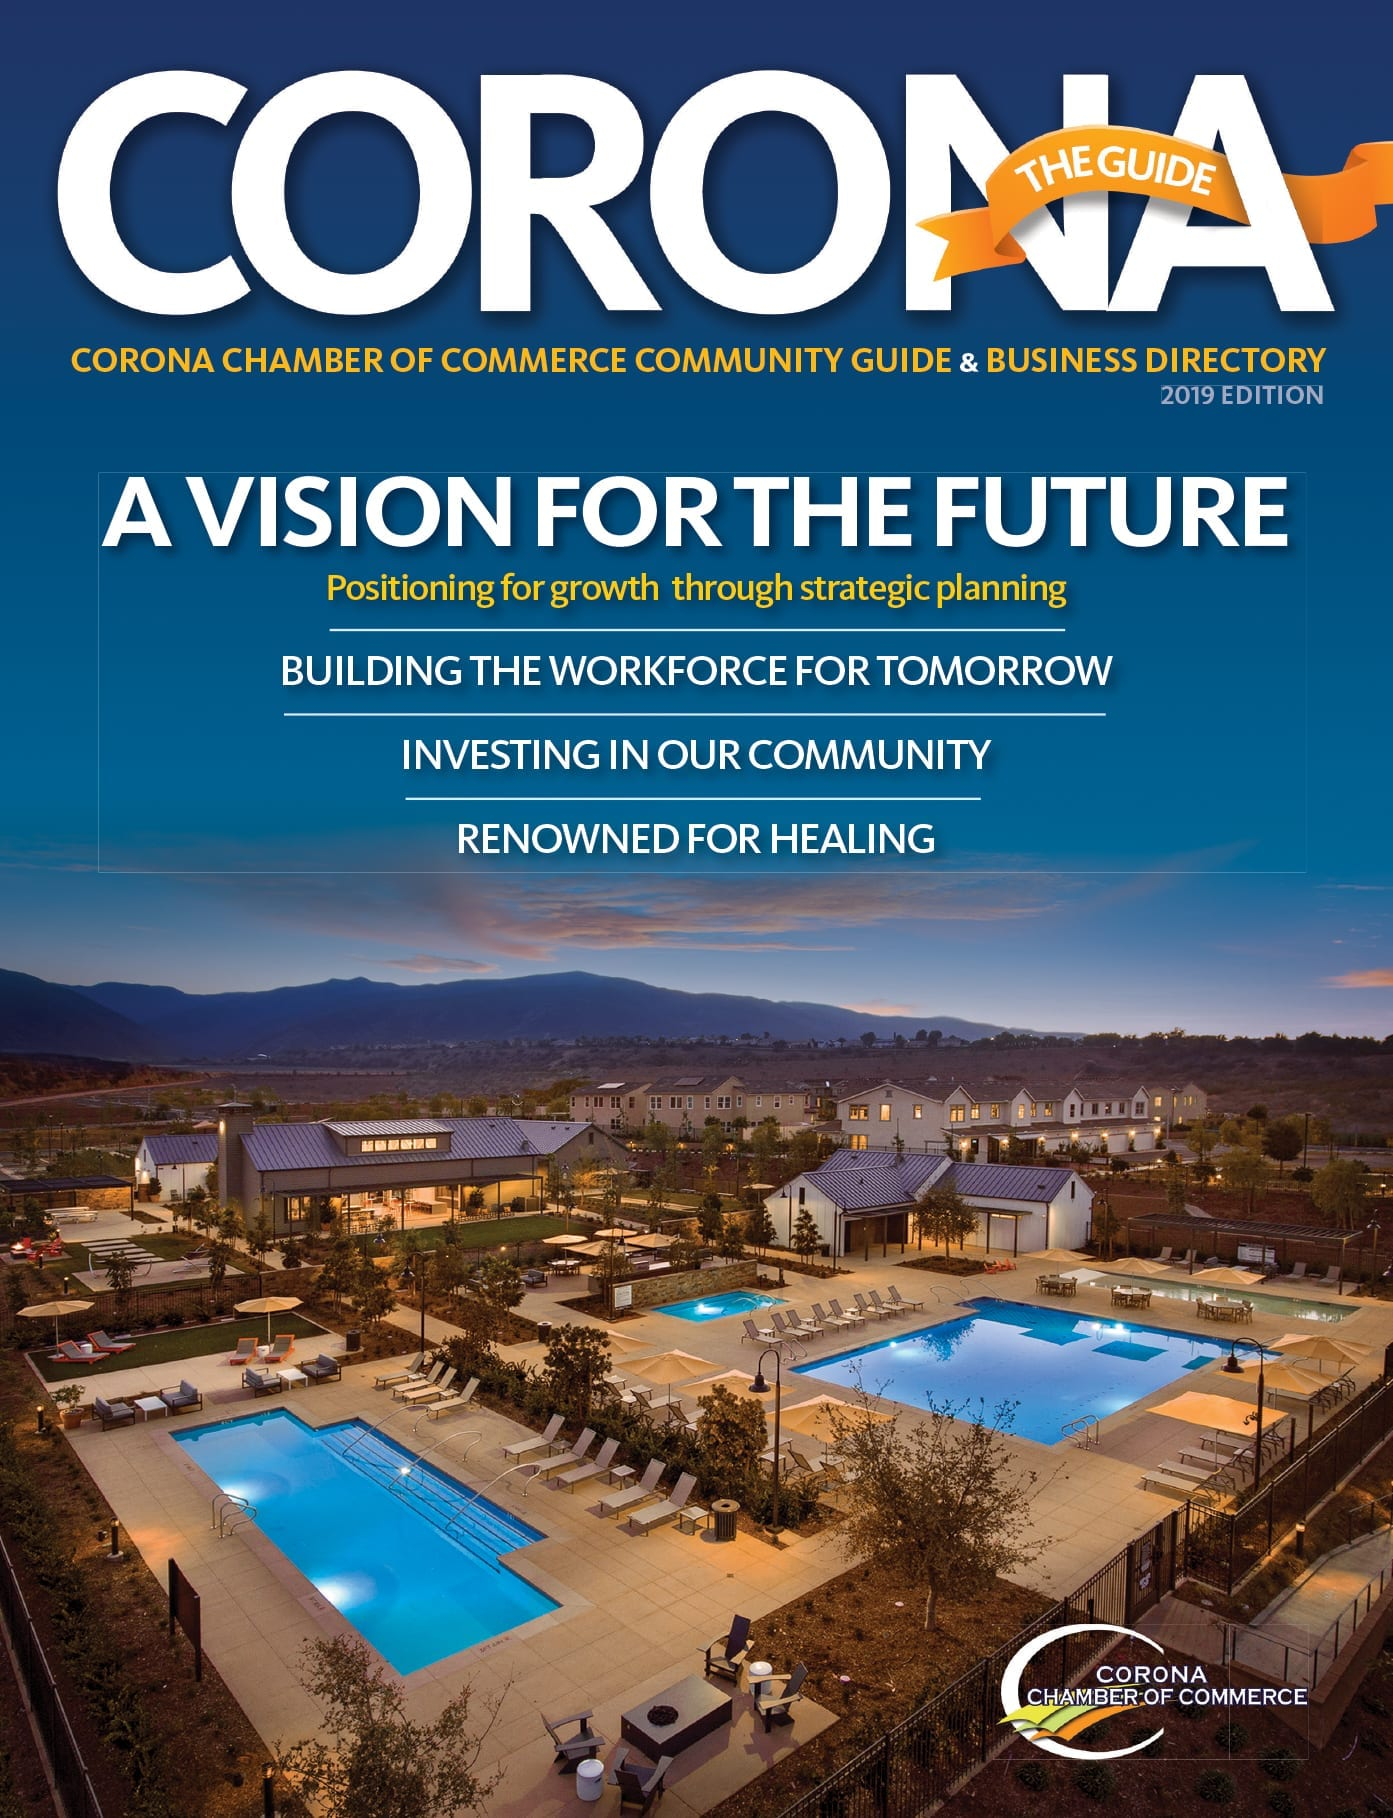 Corona Chamber of Commerce Community Guide & Directory